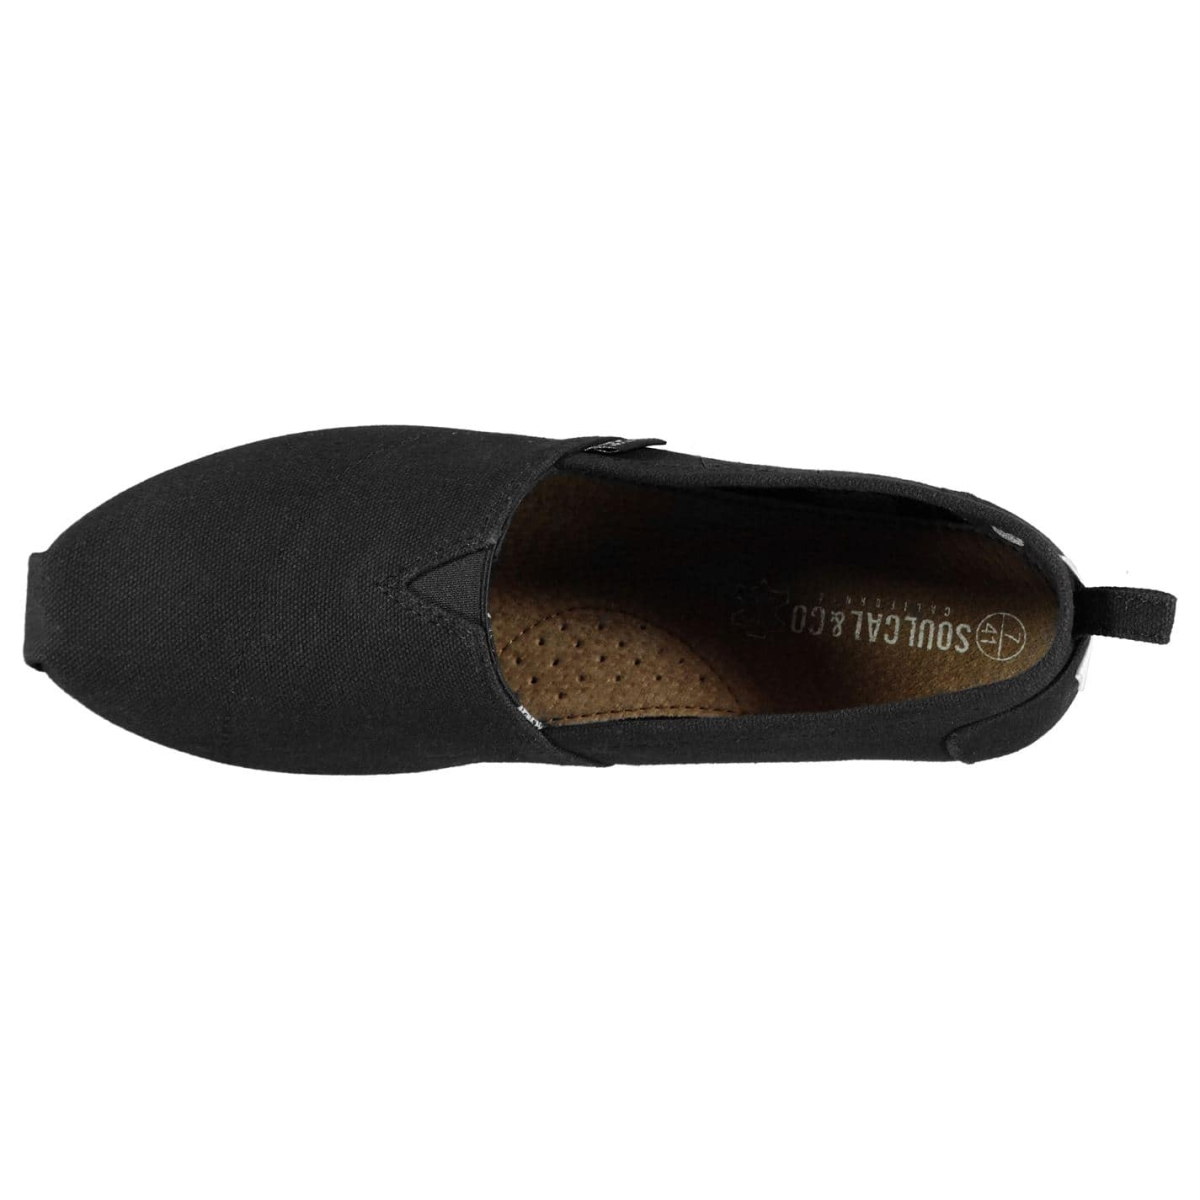 Soulcal Hommes Baskets Chaussures De Course Baskets Trainers toile Slip Ons 6555